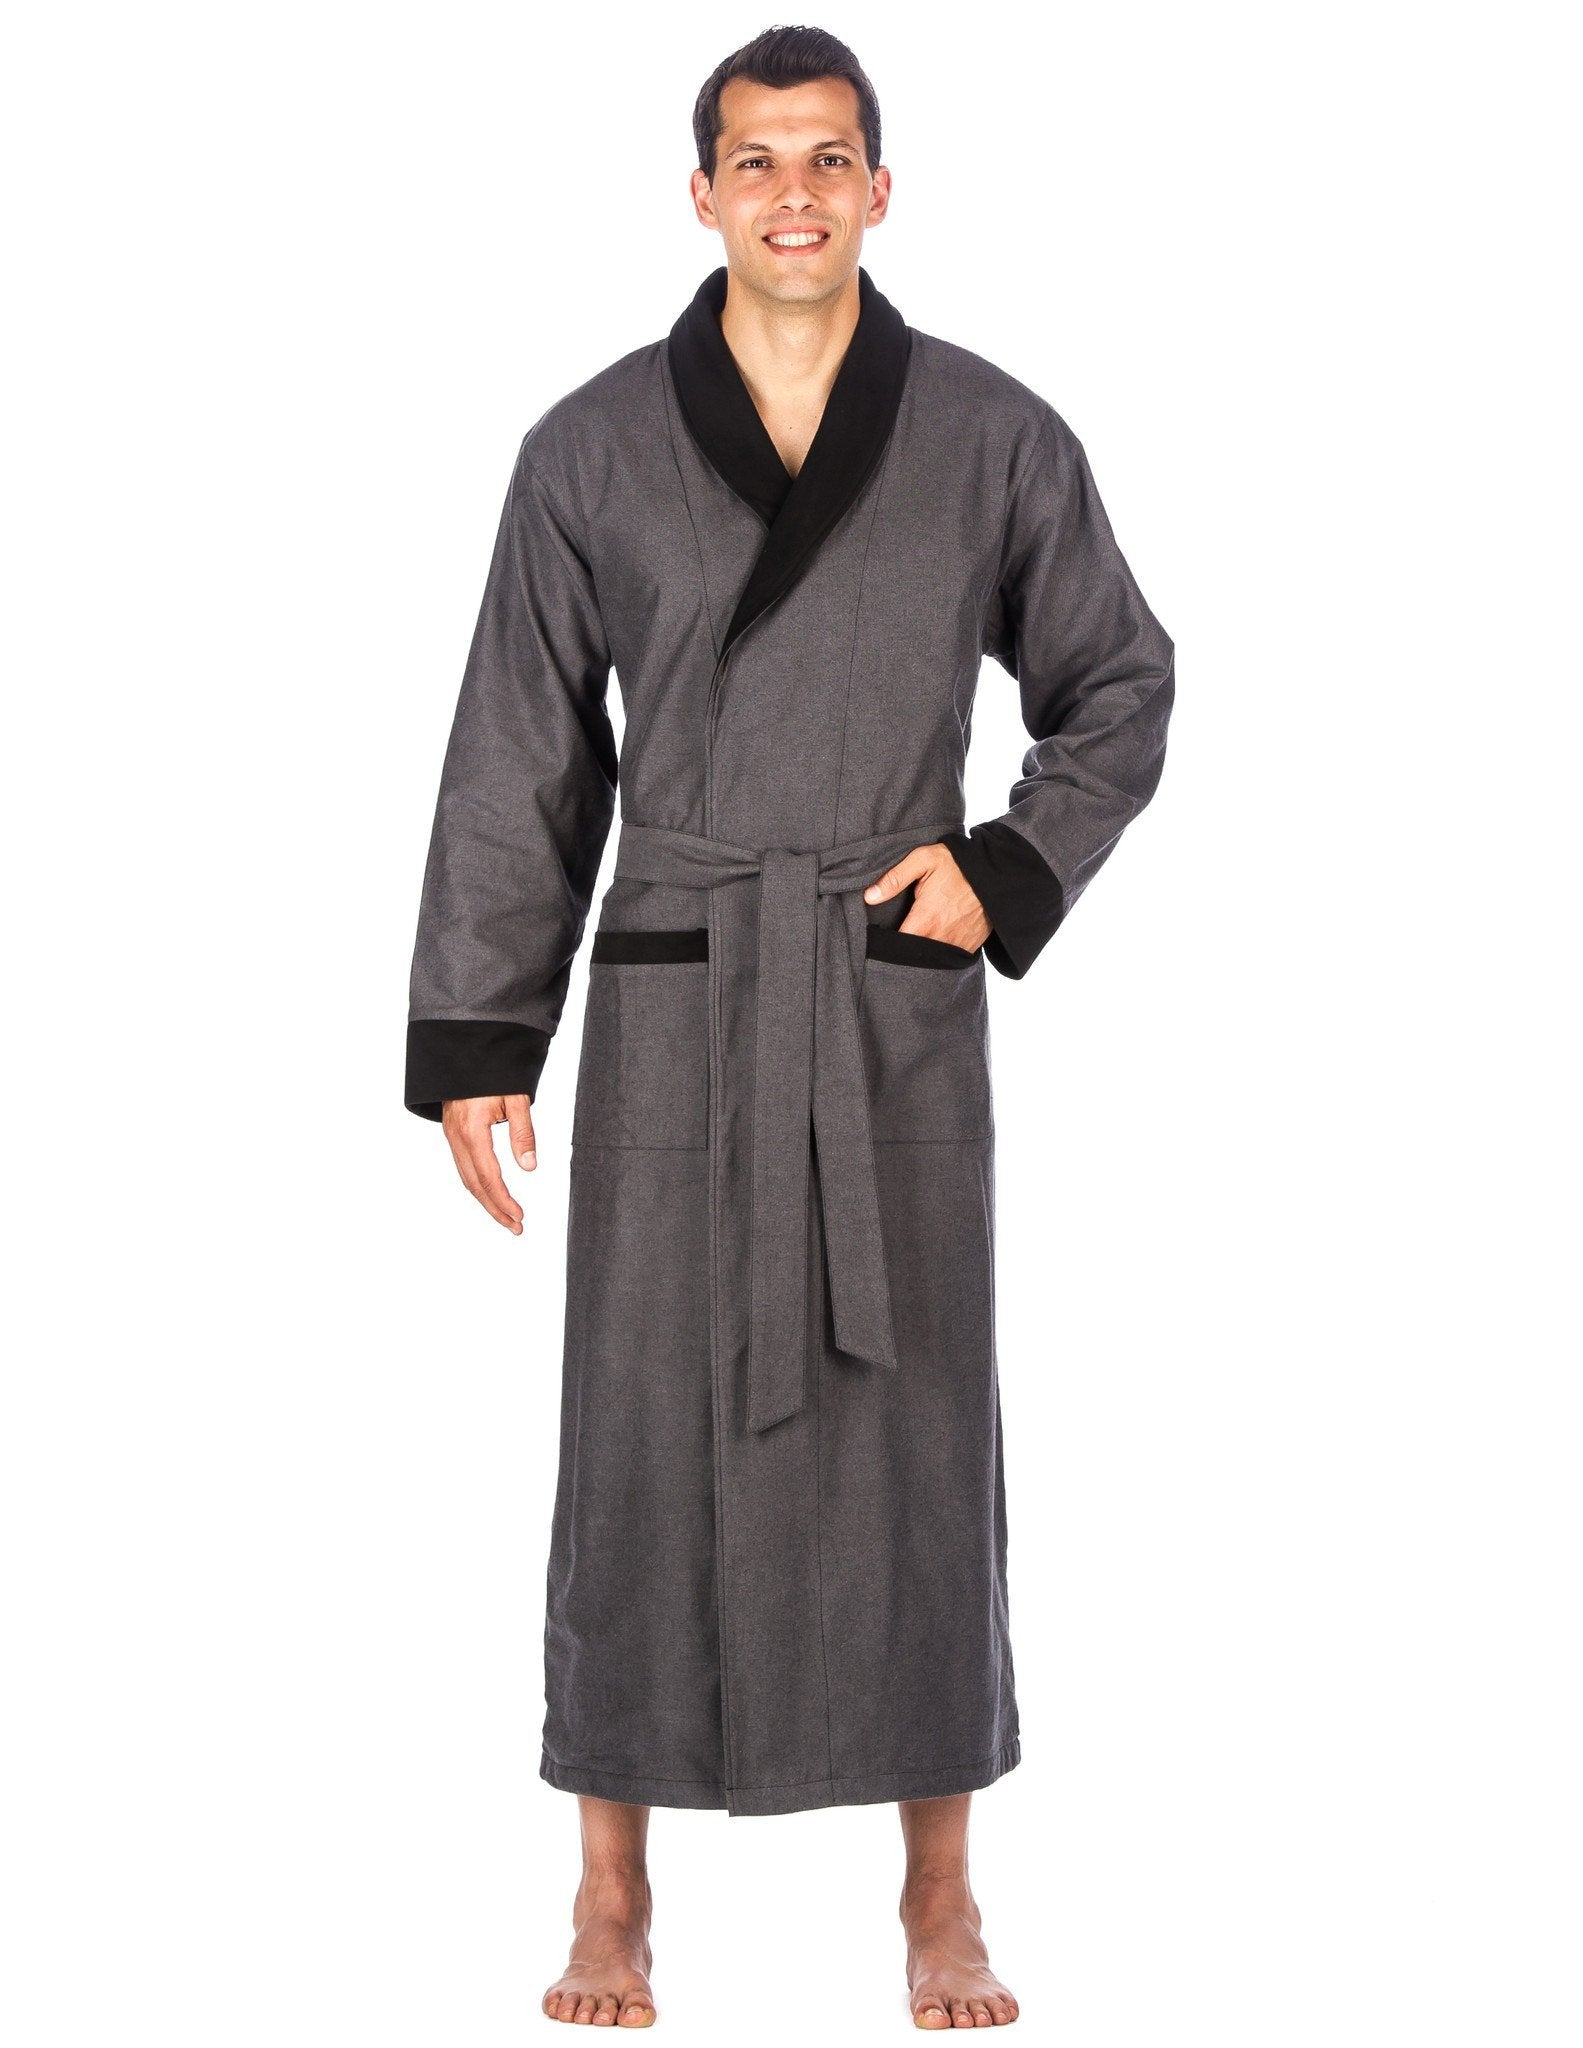 Men's Premium 100% Cotton Flannel Fleece Lined Robe - Dark Grey